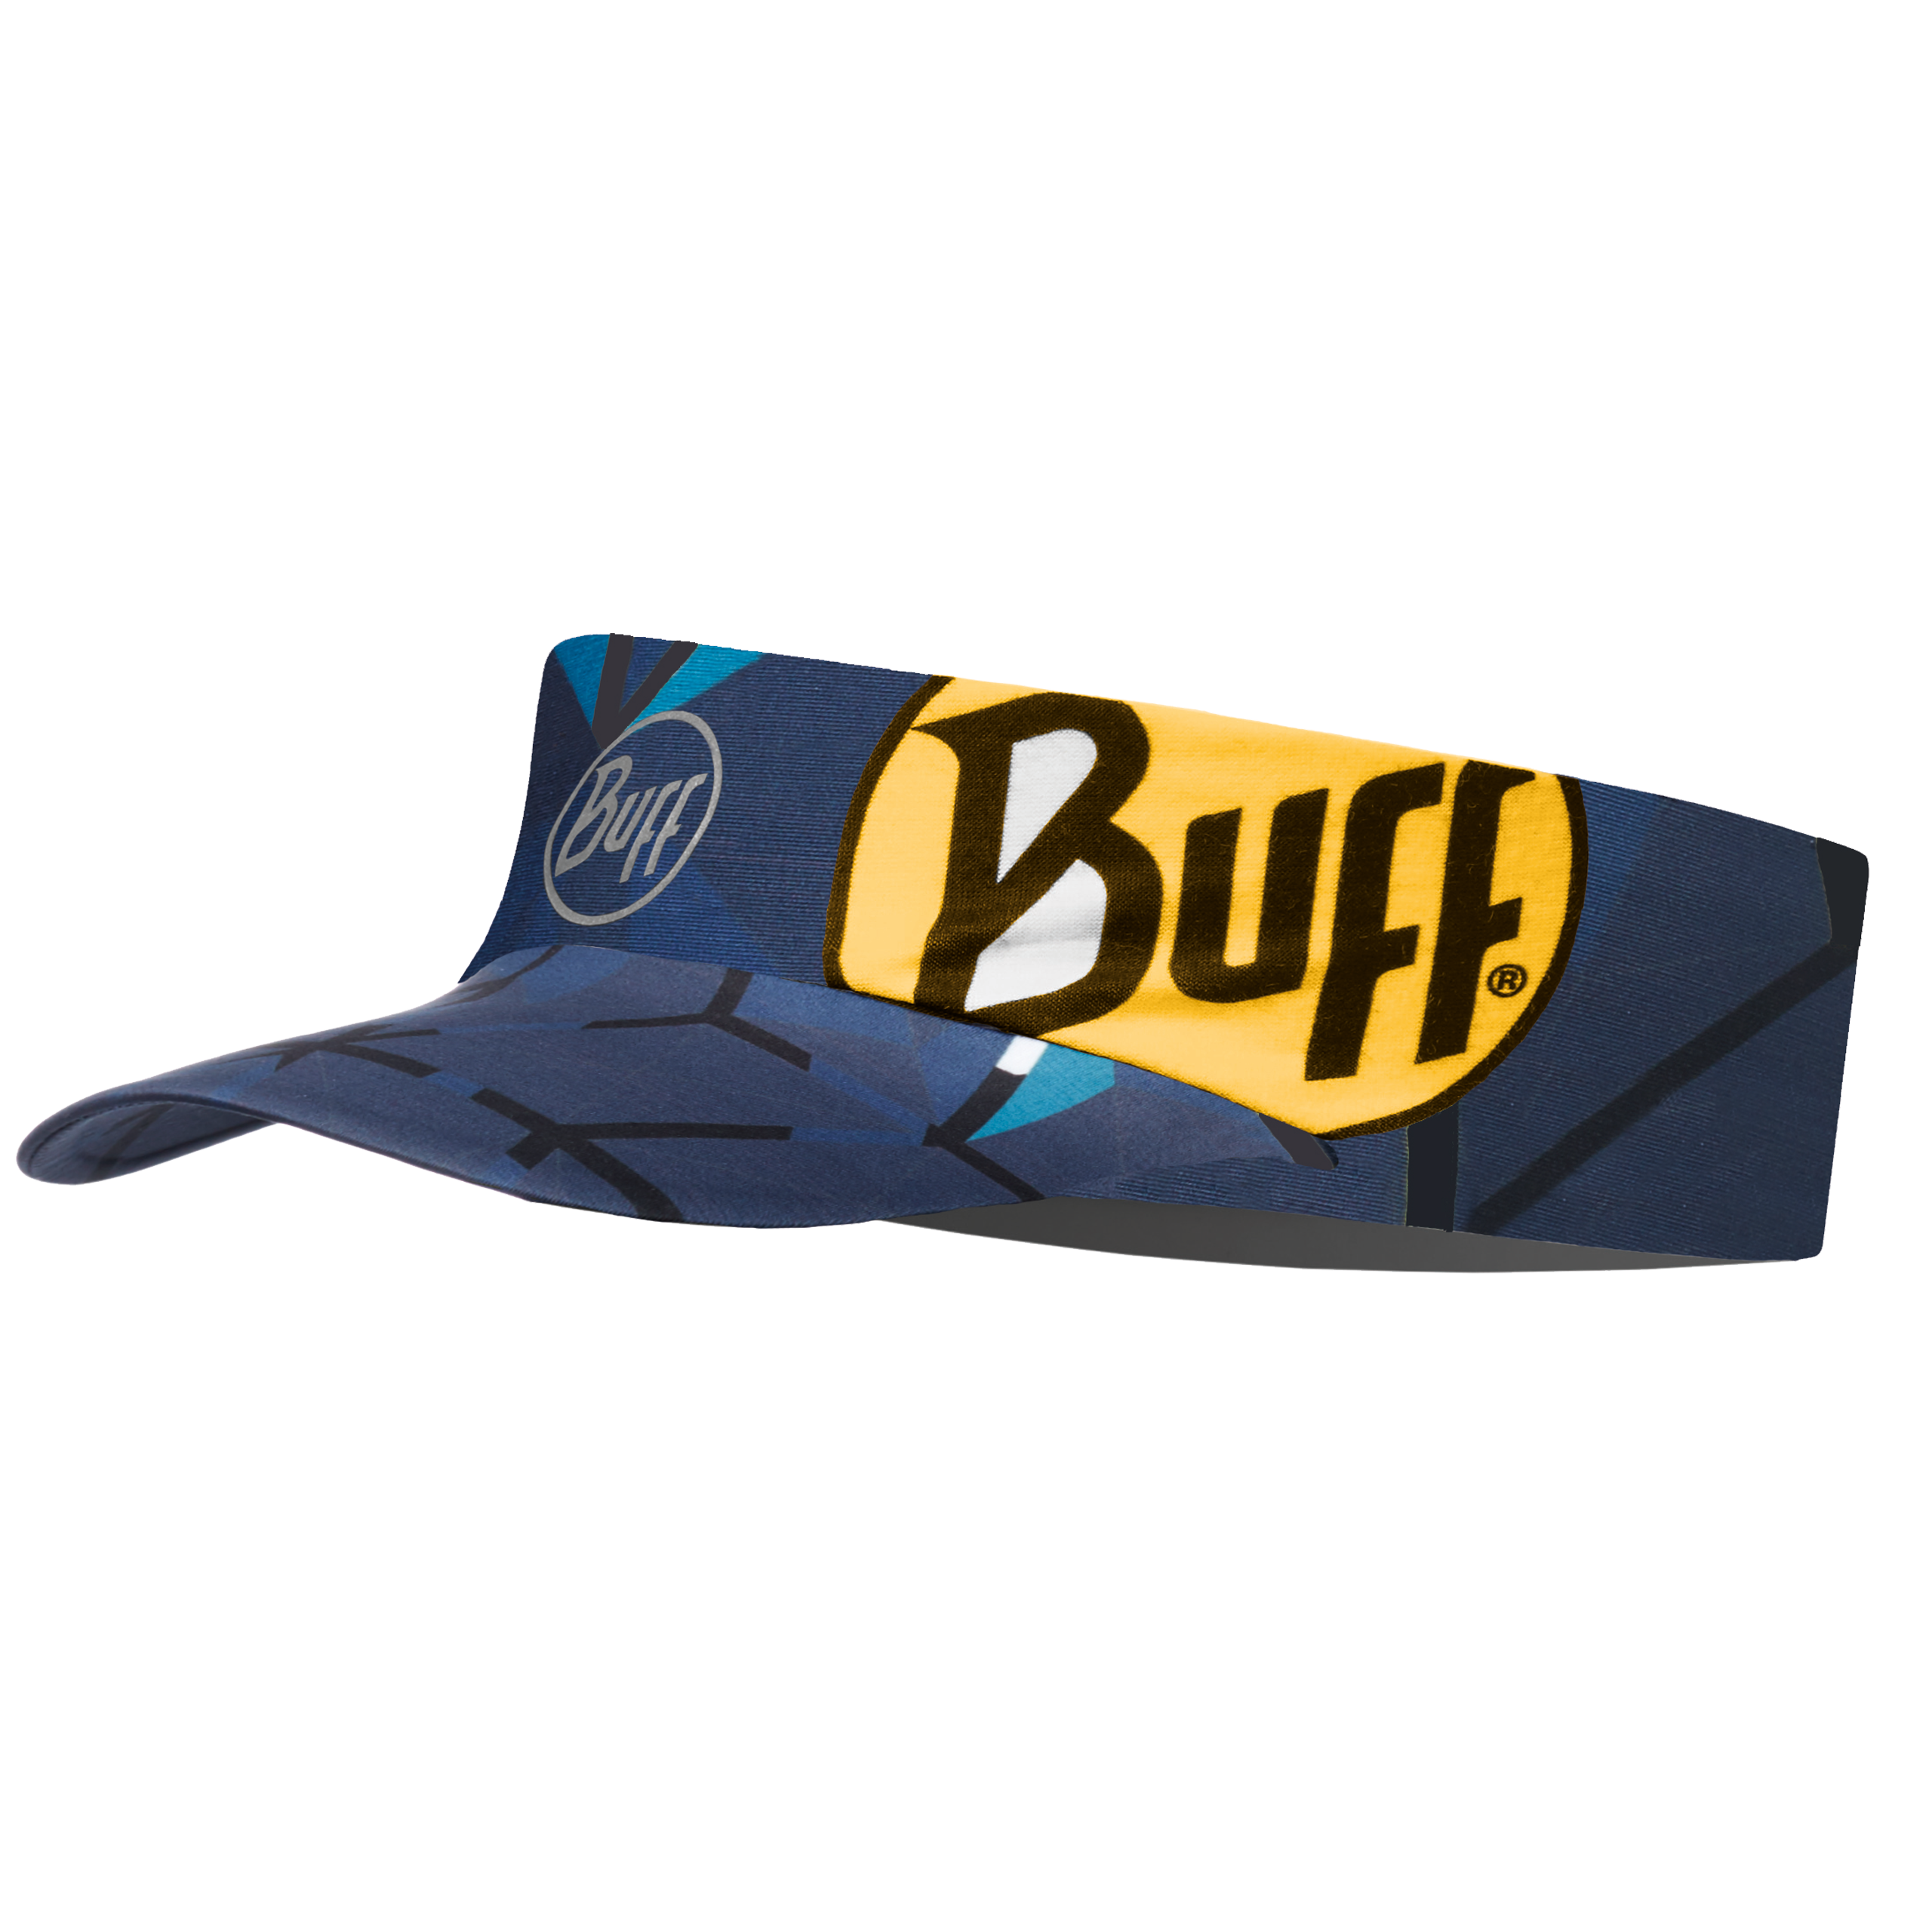 Купить Кепка BUFF PACK RUN VISOR HELIX OCEAN Банданы и шарфы Buff ® 1312896